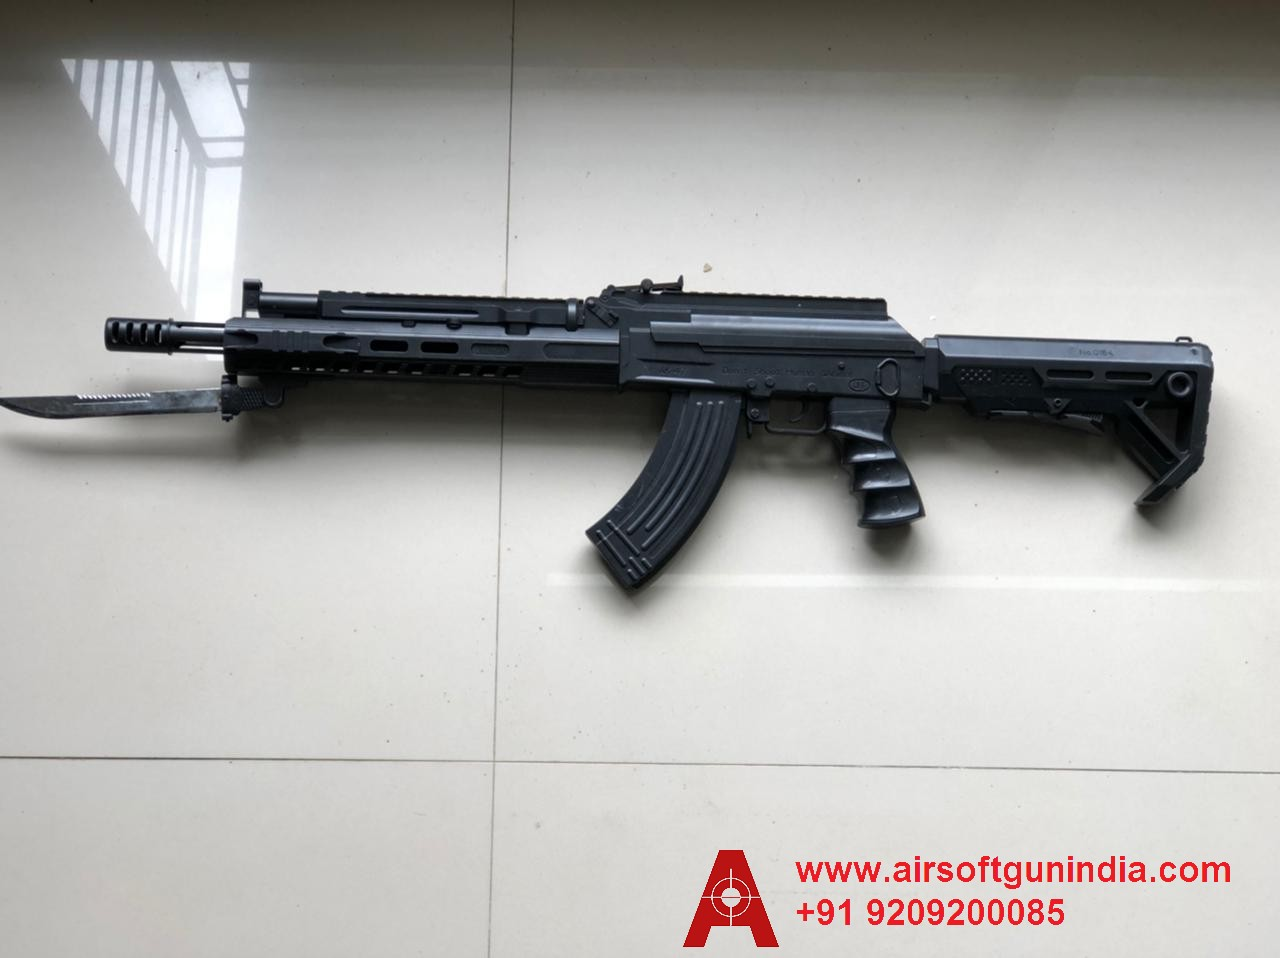 AK-203 Assault Airsoft Rifle With Fake Knife by Airsoft Gun India